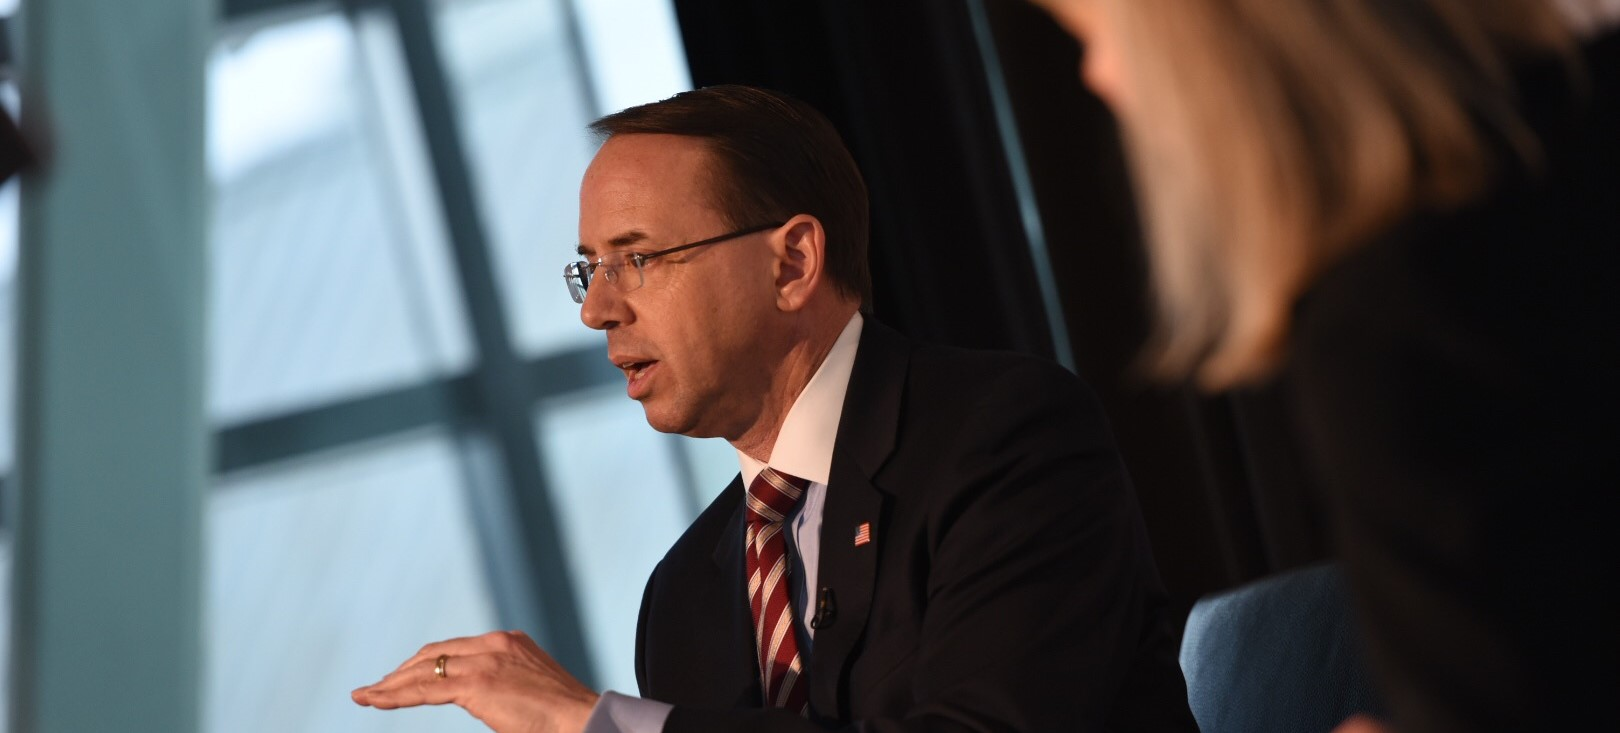 Maryland files motion to replace acting AG Whitaker with Rosenstein